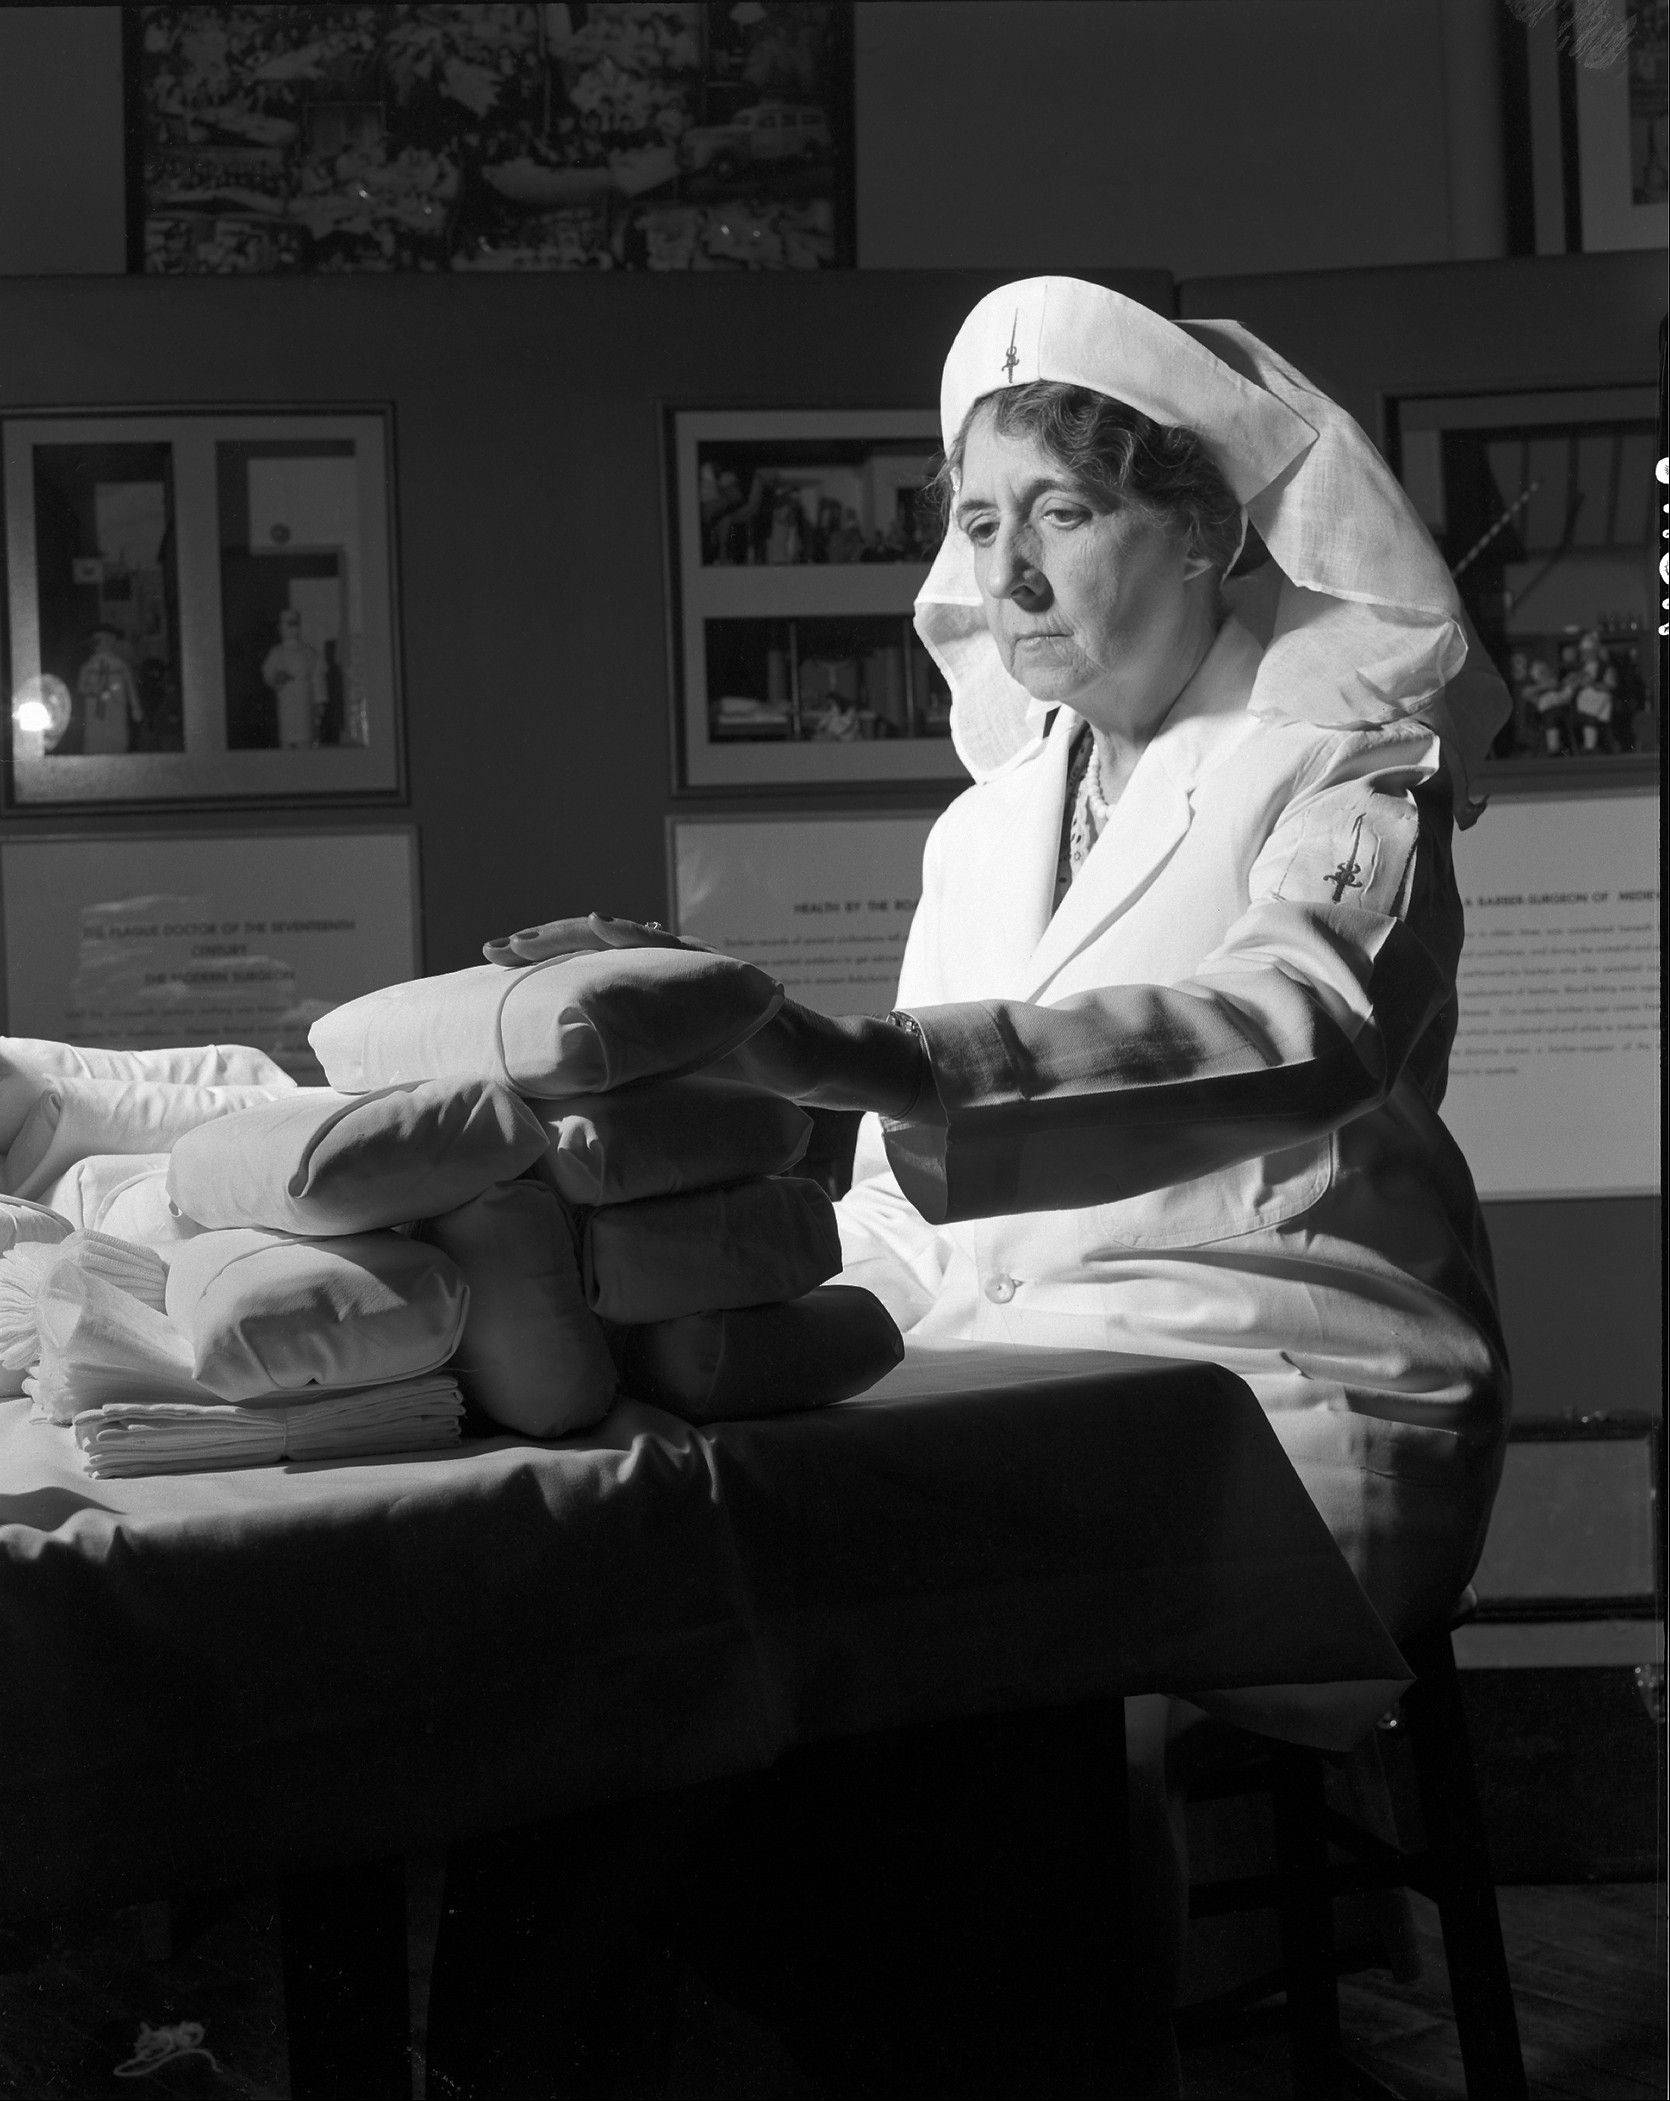 A Women's Field Army volunteer prepares surgical dressings. The Women's Field Army was an organization of women who took to the streets to educate people about cancer and raise money to save lives, helped build the American Cancer Society and the cancer movement.